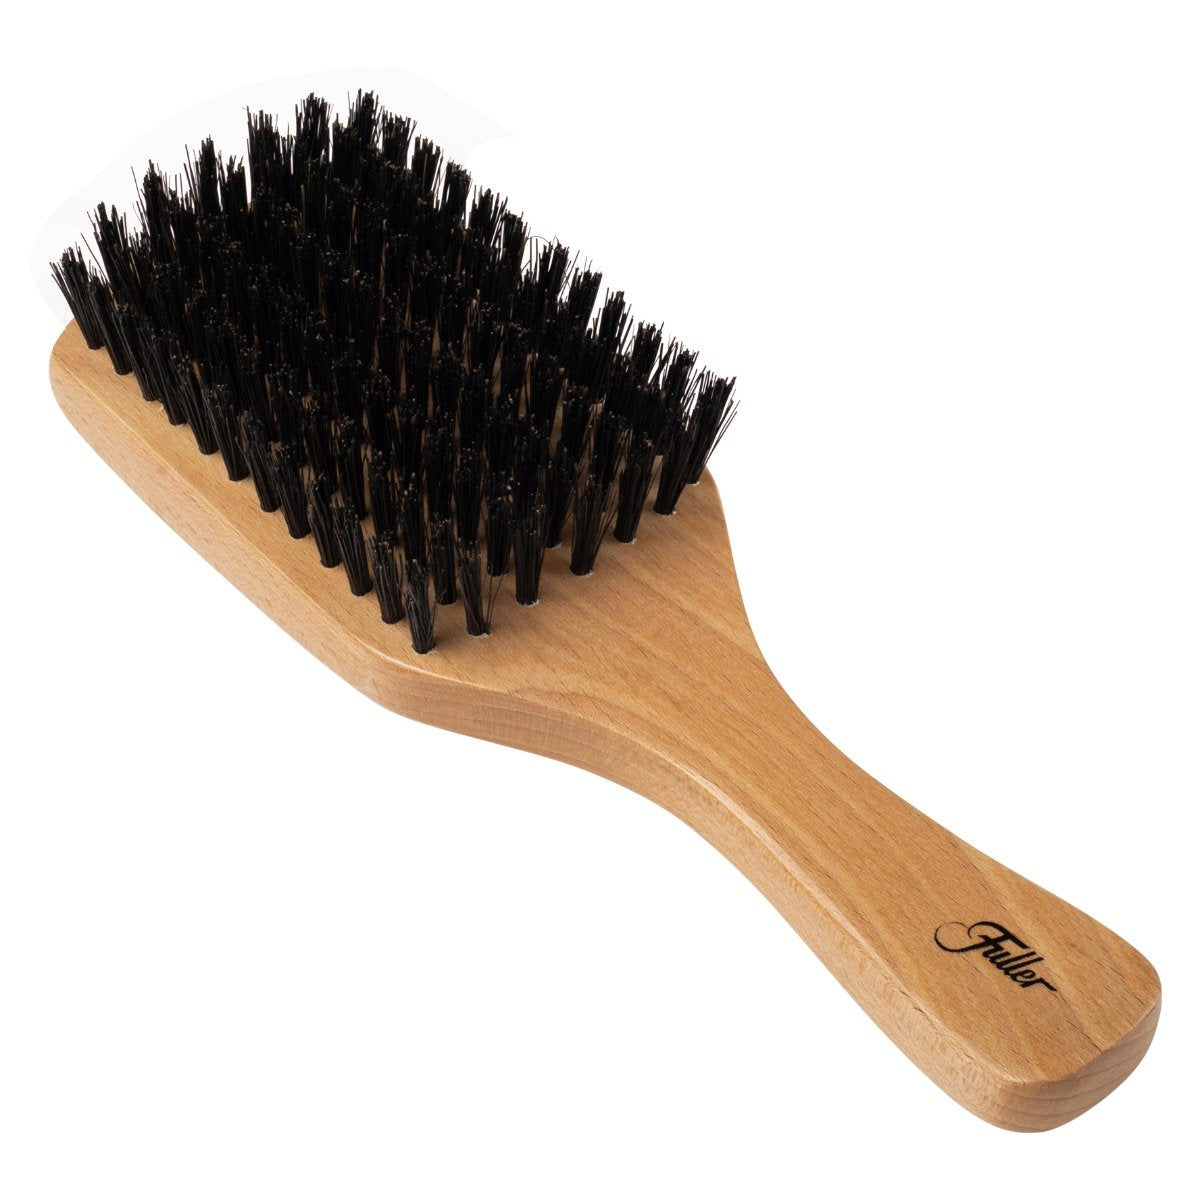 Beech Wood Club Hairbrush W/Natural Boars Hair Bristles Unique Wood Pattern-Hair Brushes-Fuller Brush Company